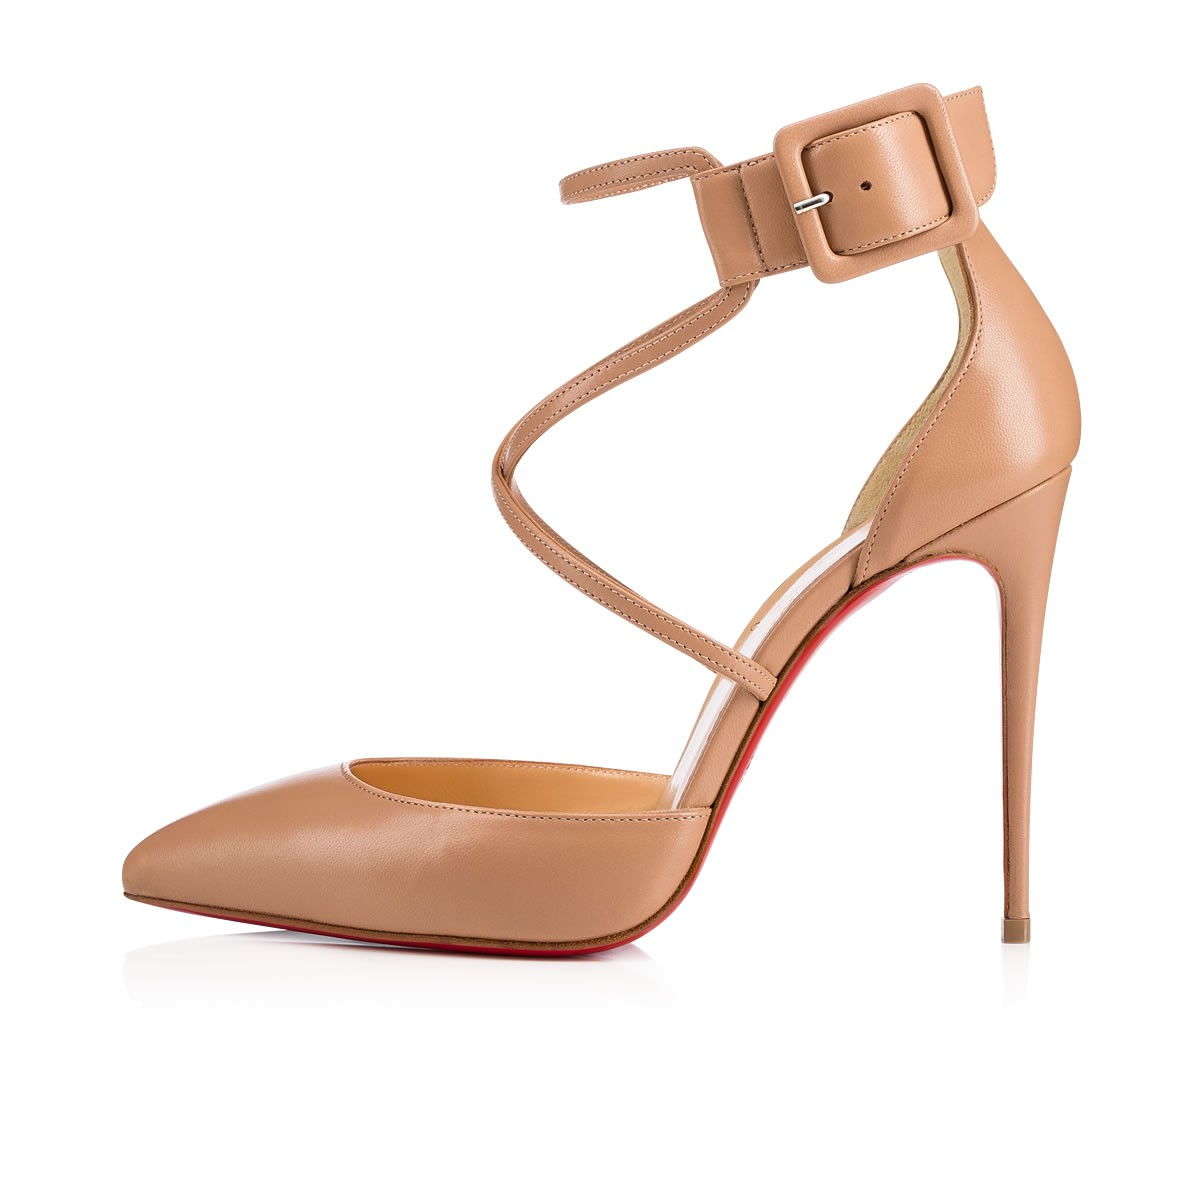 the best attitude b0abf 038d6 Suzanna 100 NUDE Nappa - Women Shoes - Christian Louboutin